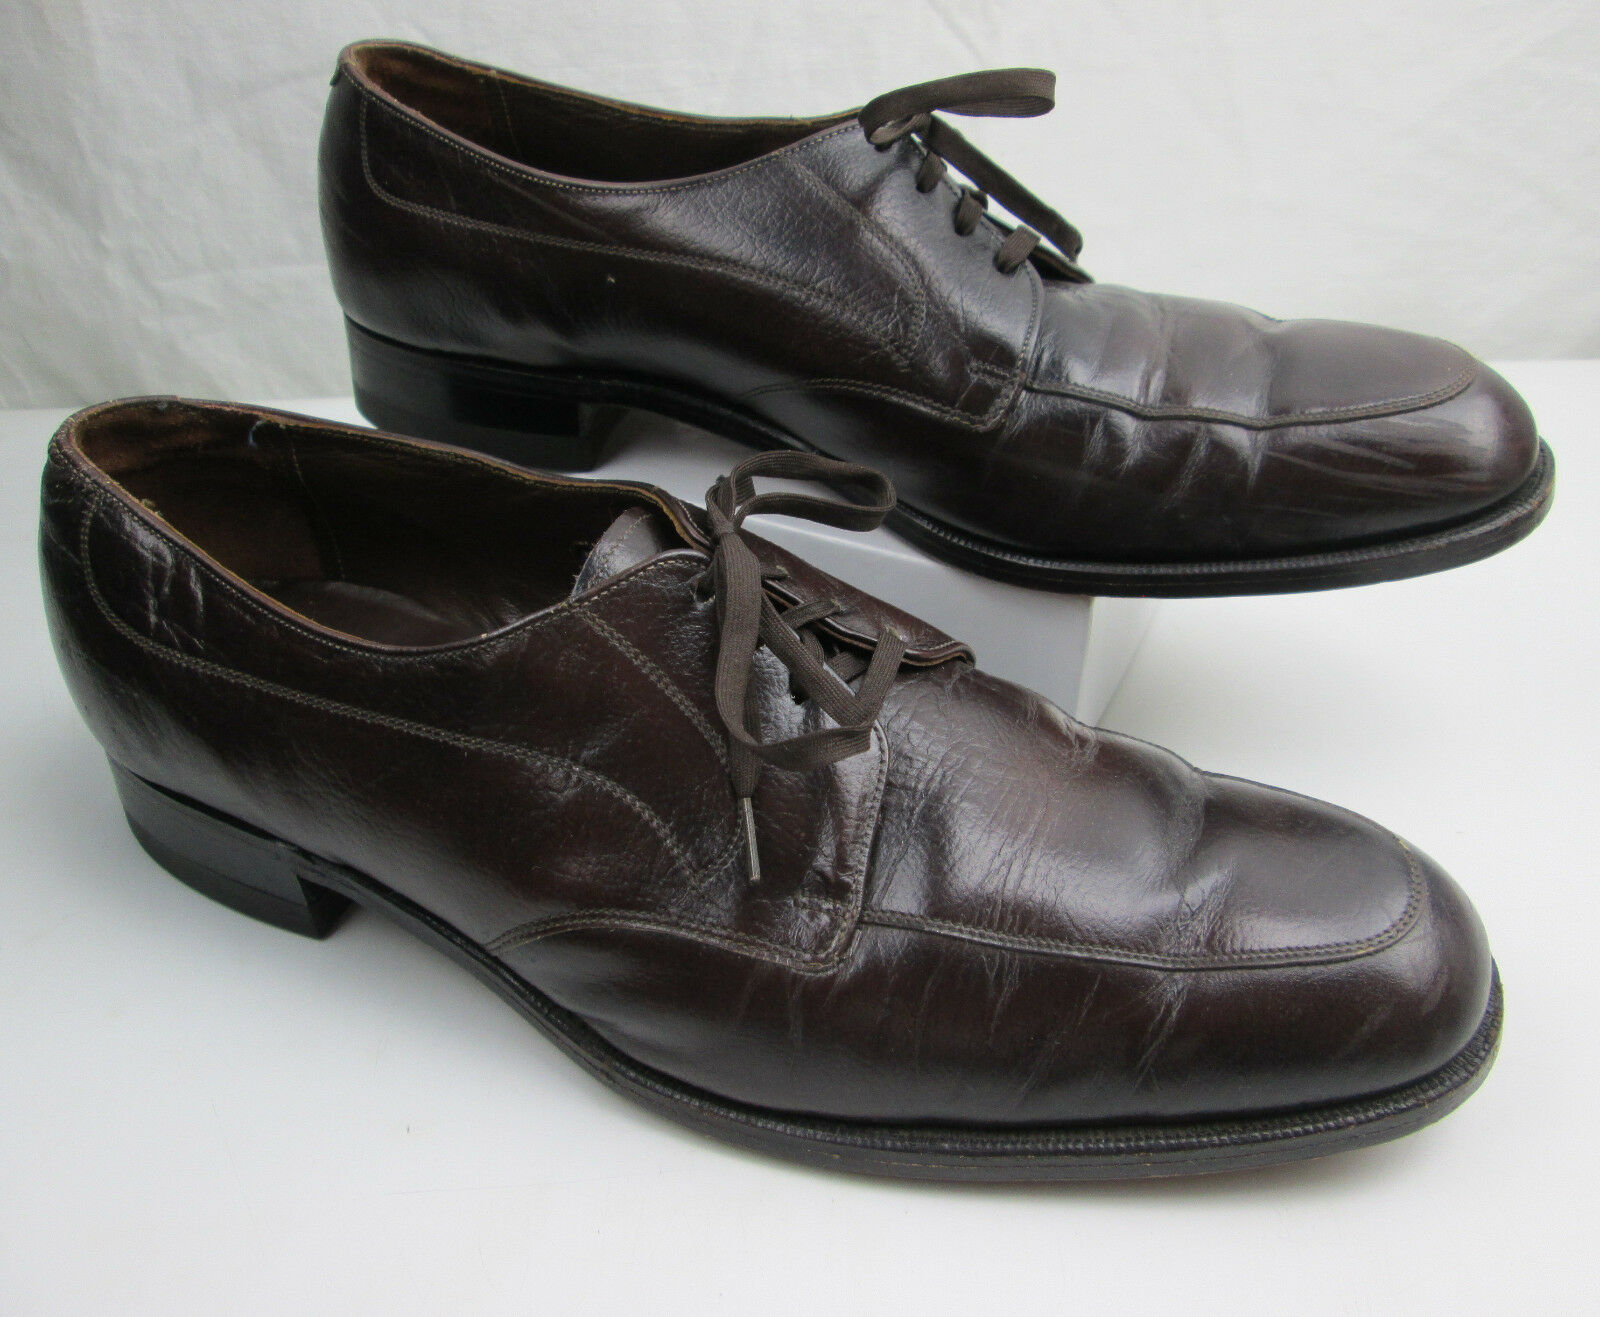 Vintage Brown Florsheim Dress shoes 13 B Lace Up bluechers Model 31884 PREOWNED